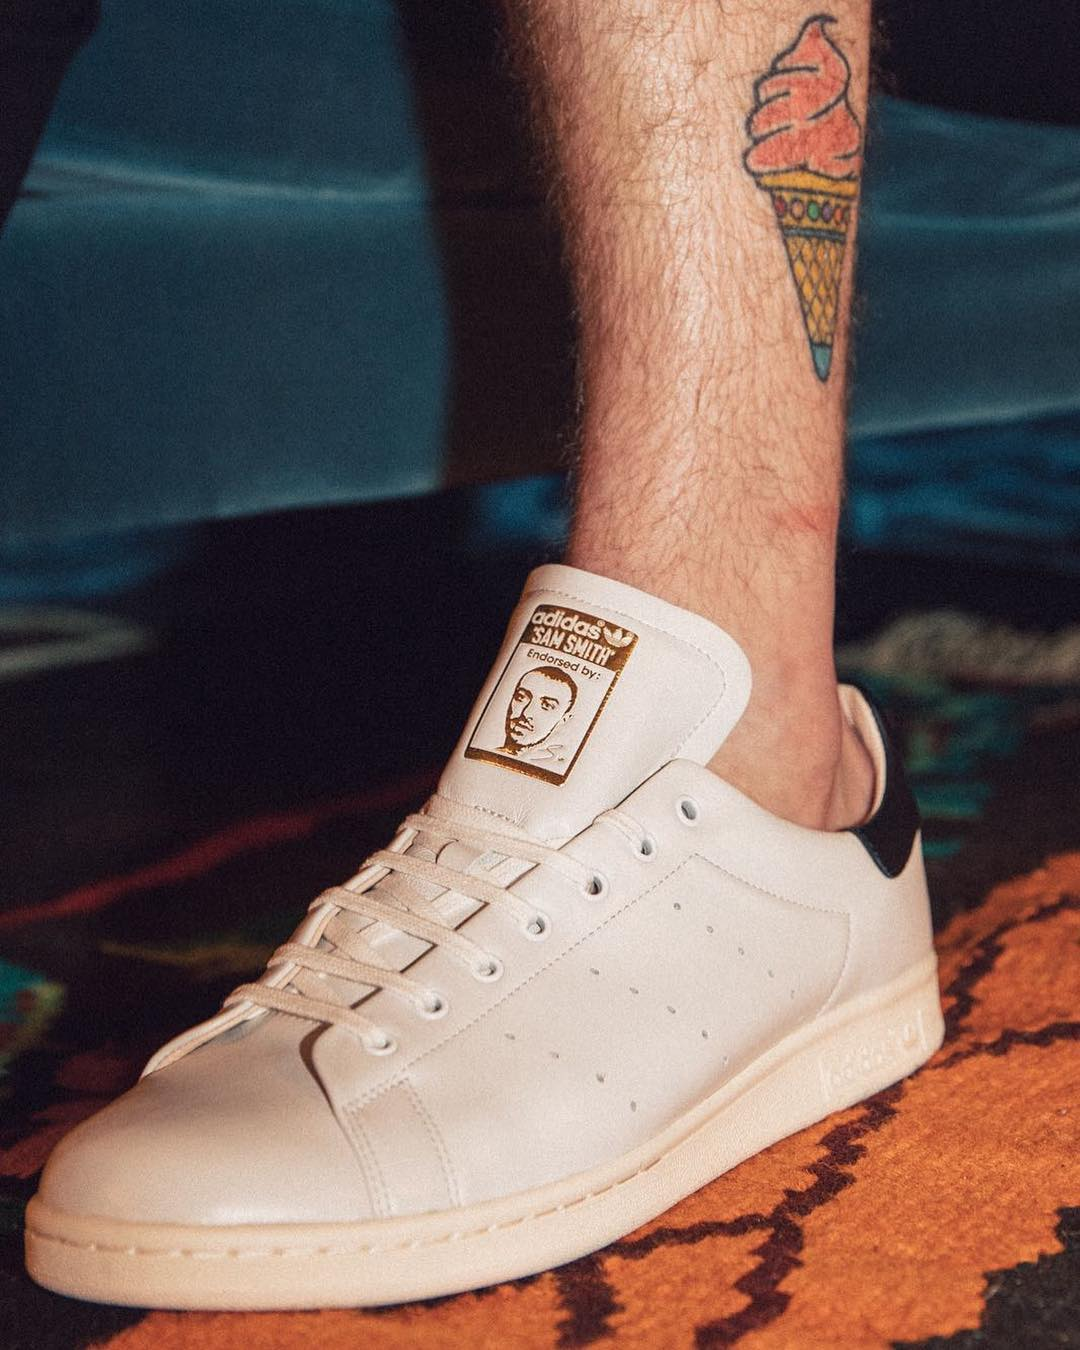 PHOTO: Sam Smith Custom Adidas